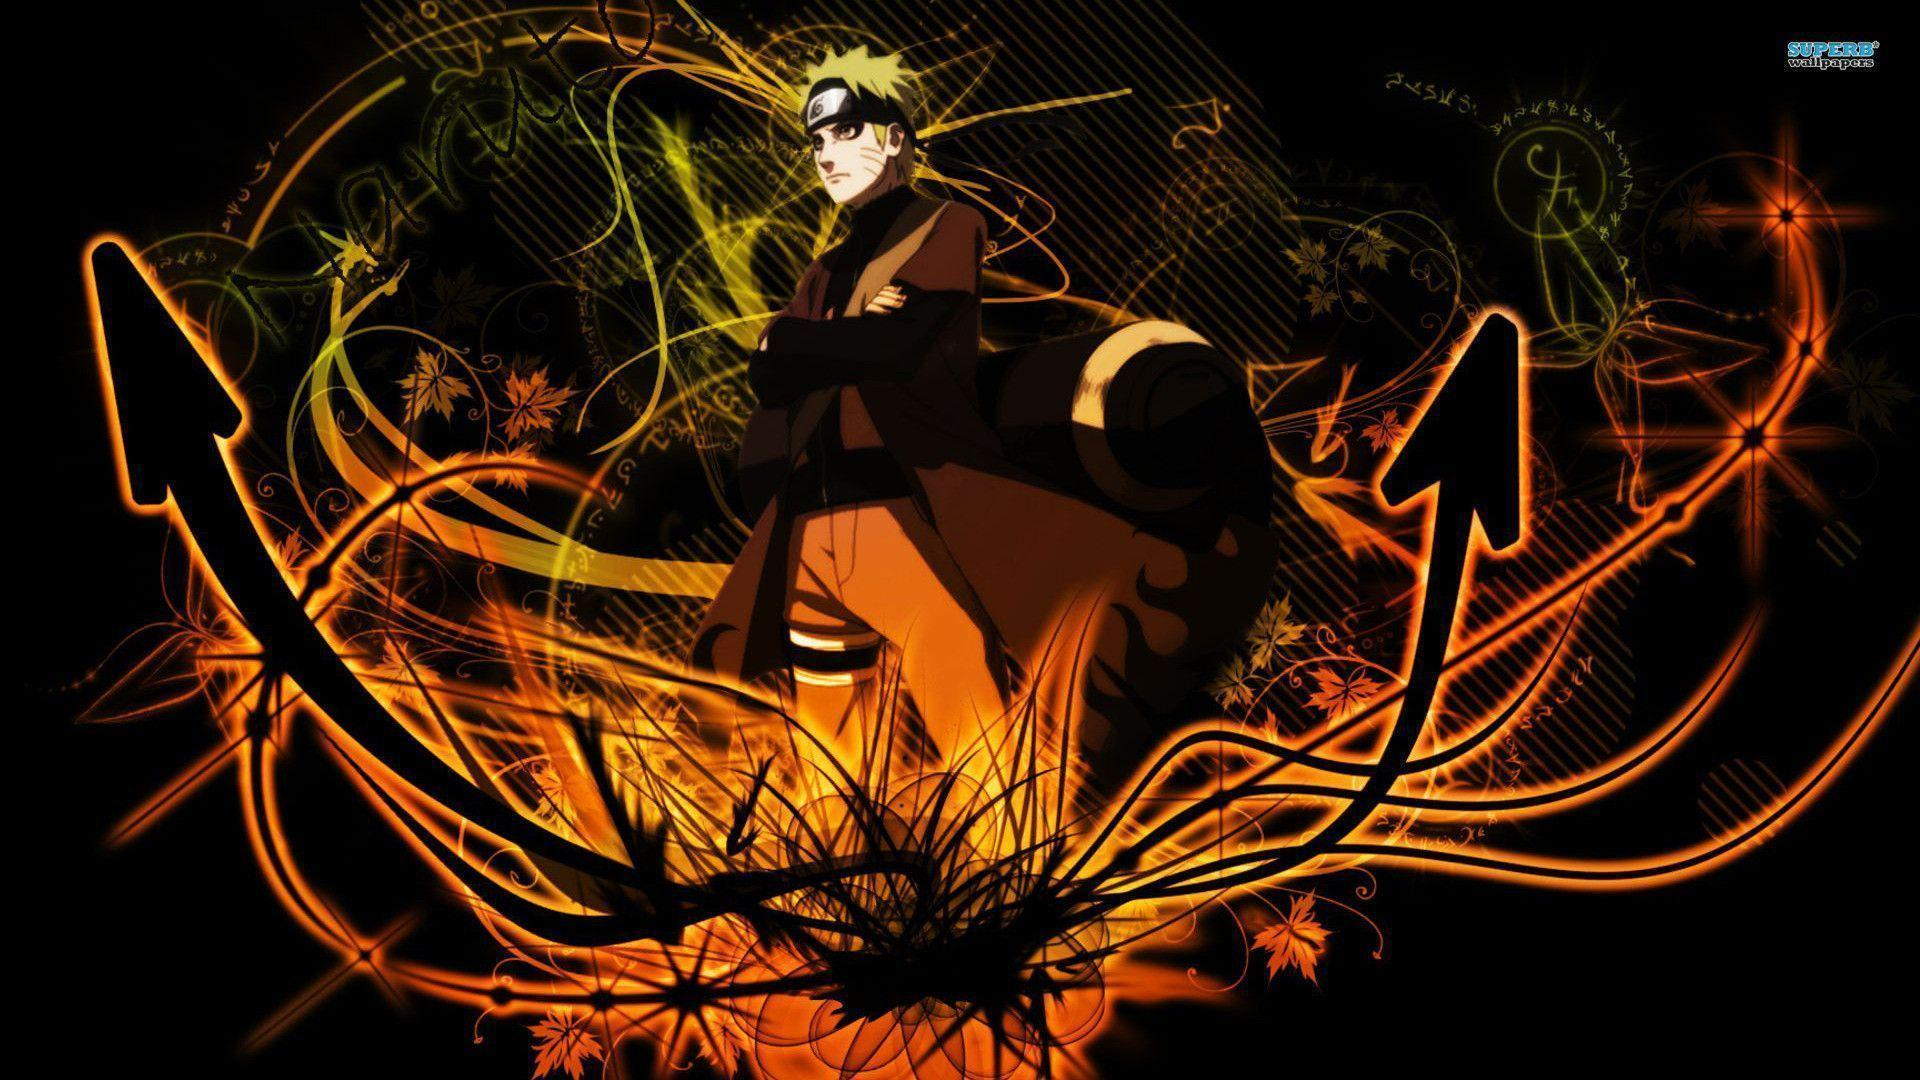 Download 780 Wallpaper Naruto Dark Paling Keren